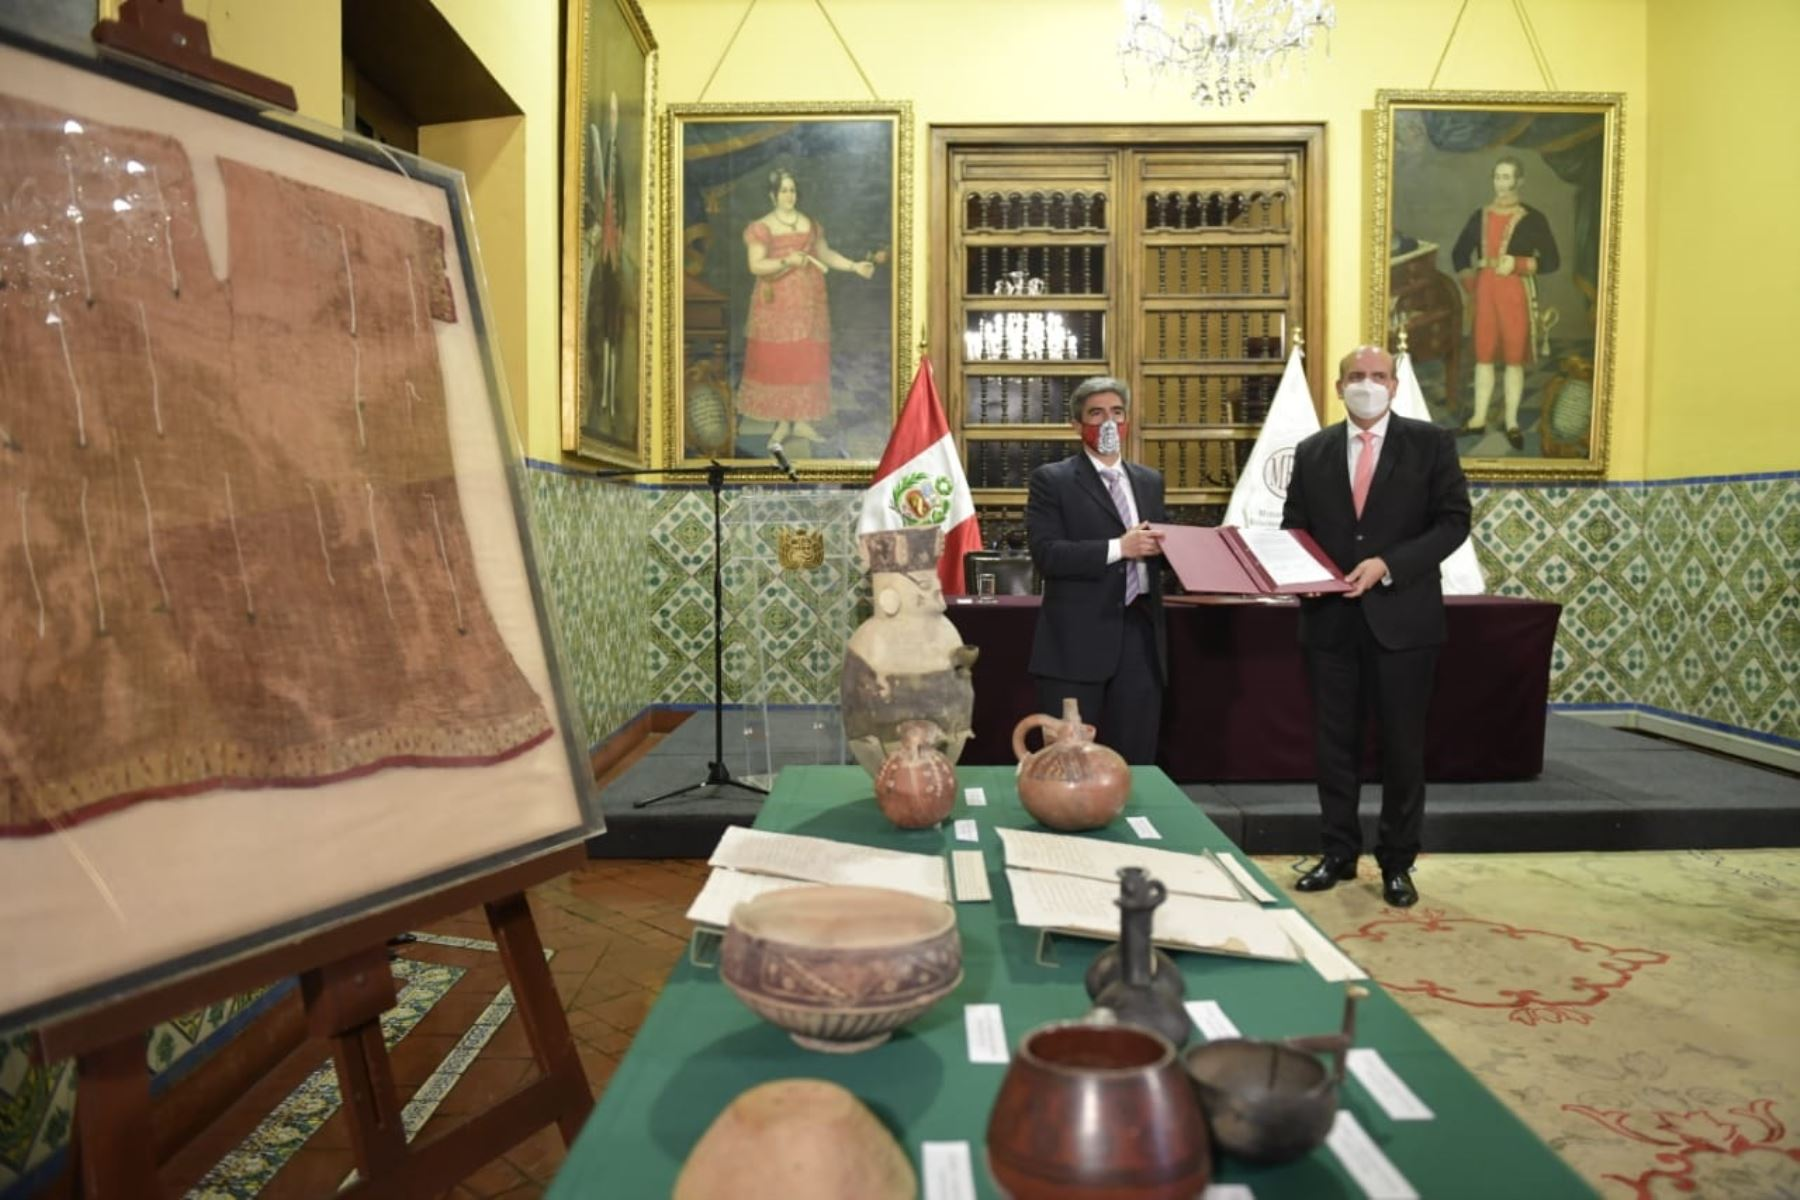 Ministers Alejandro Neyra (Culture) and Mario Lopez (Foreign Affairs) participate in a ceremony for the handing over of recovered cultural property. Photo: Ministry of Foreign Affairs